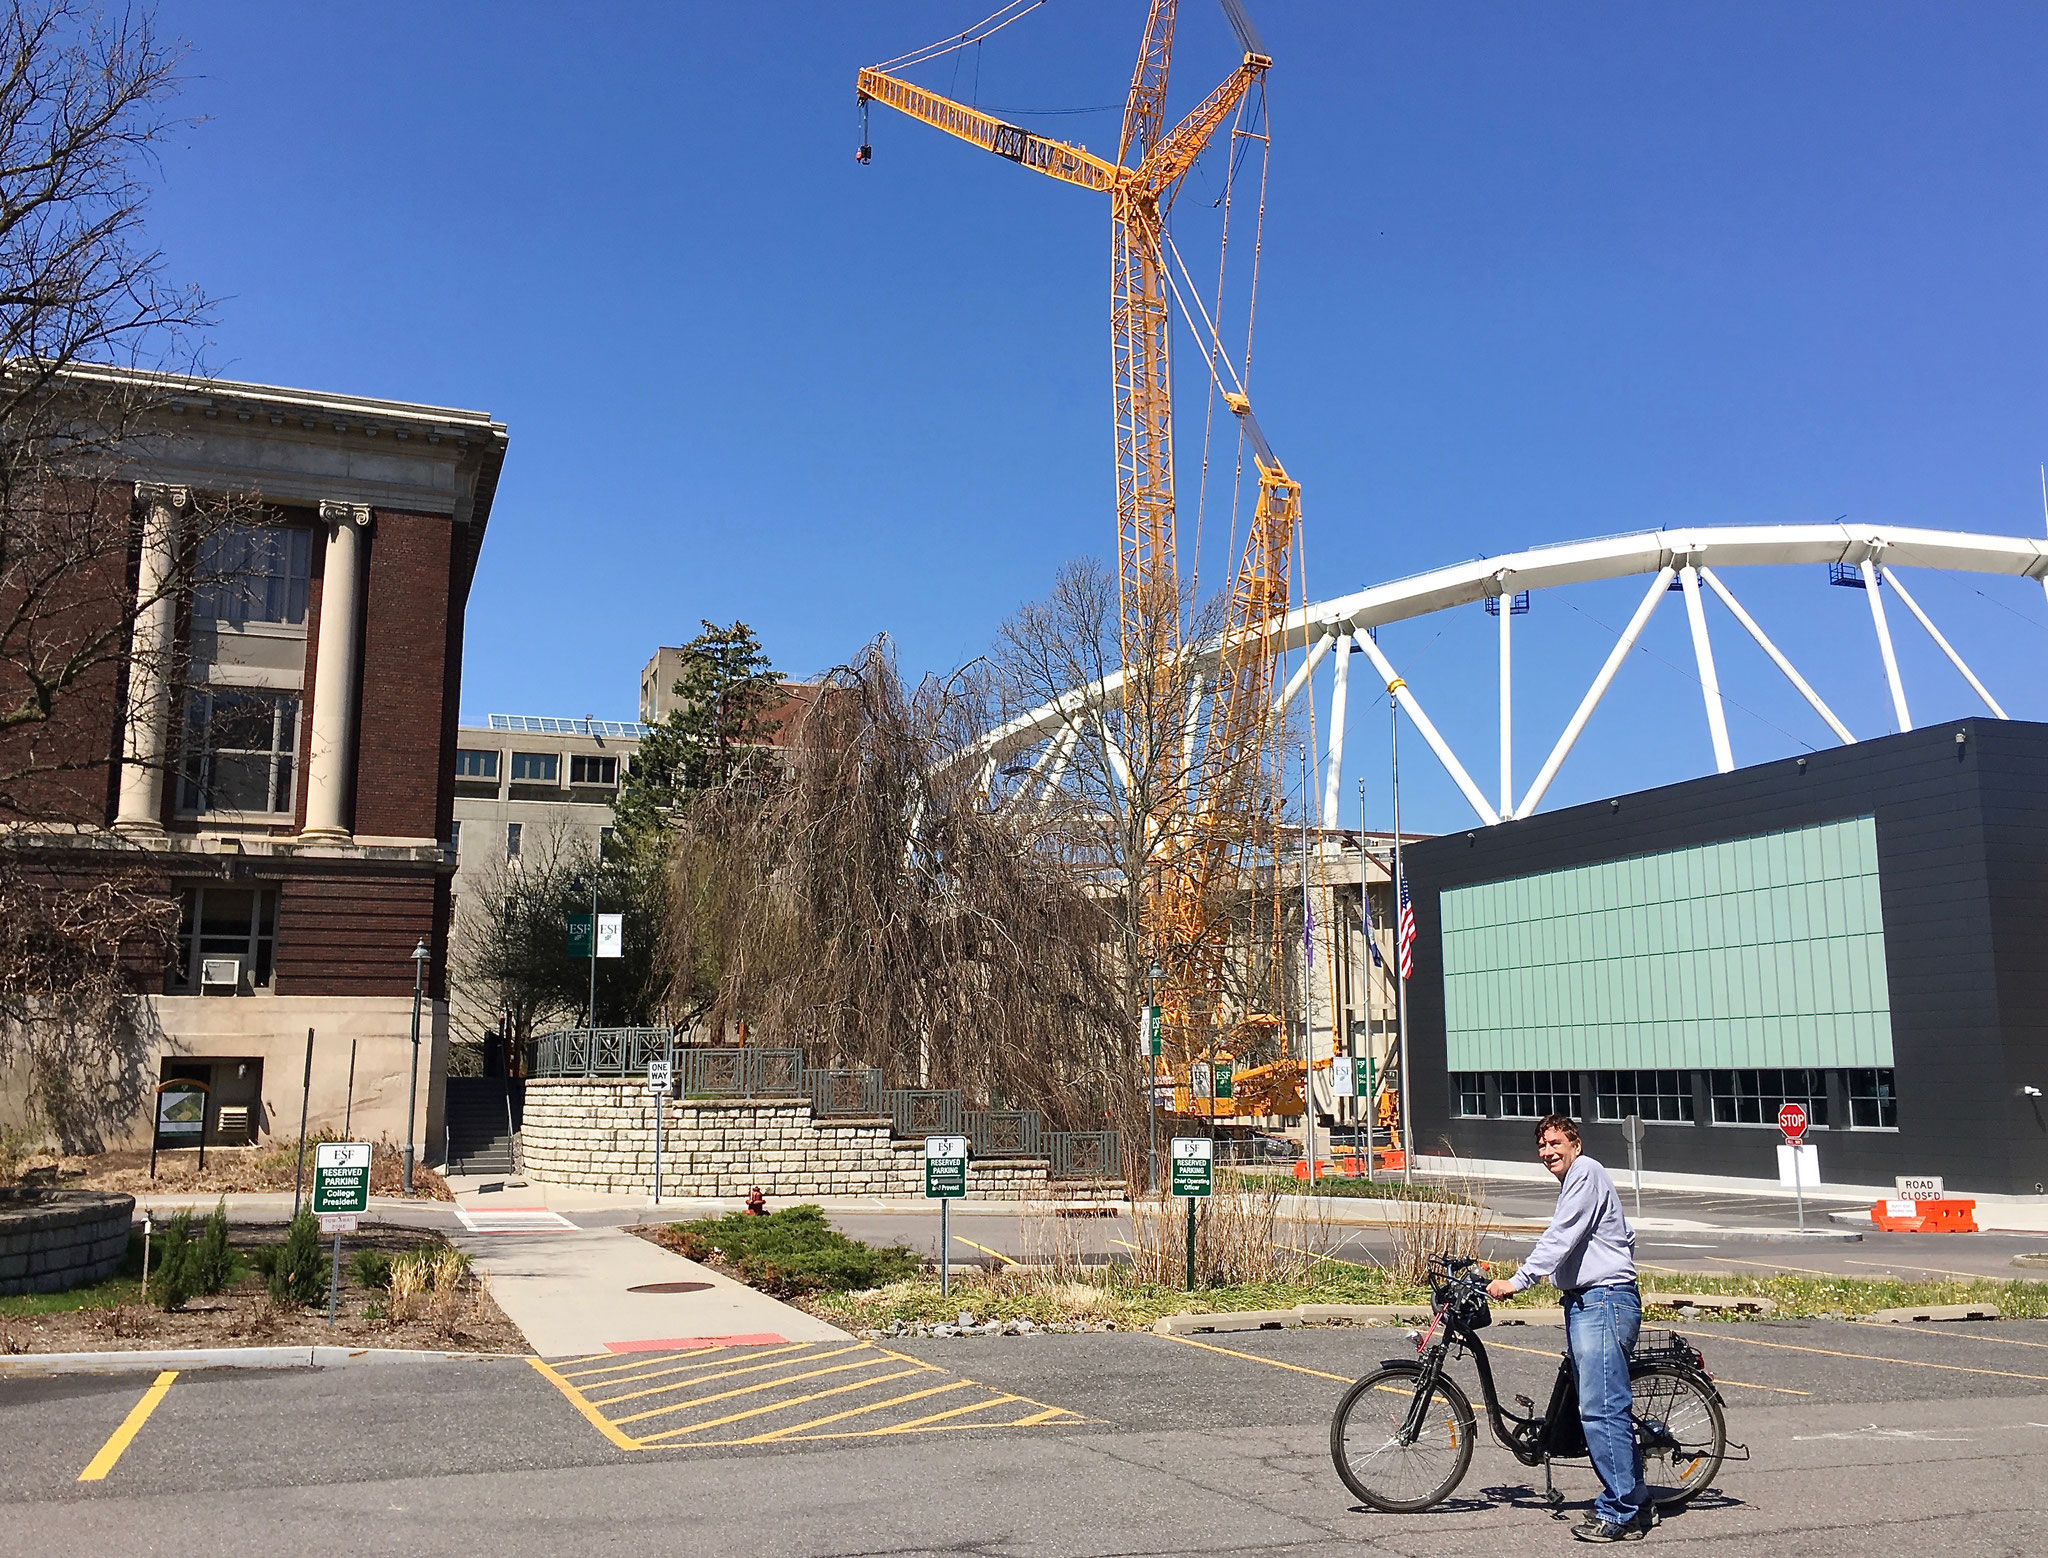 College of Forestry/Envir. Sci. where Lorraine did her NSF summer project, plus the Dome being reconstructed